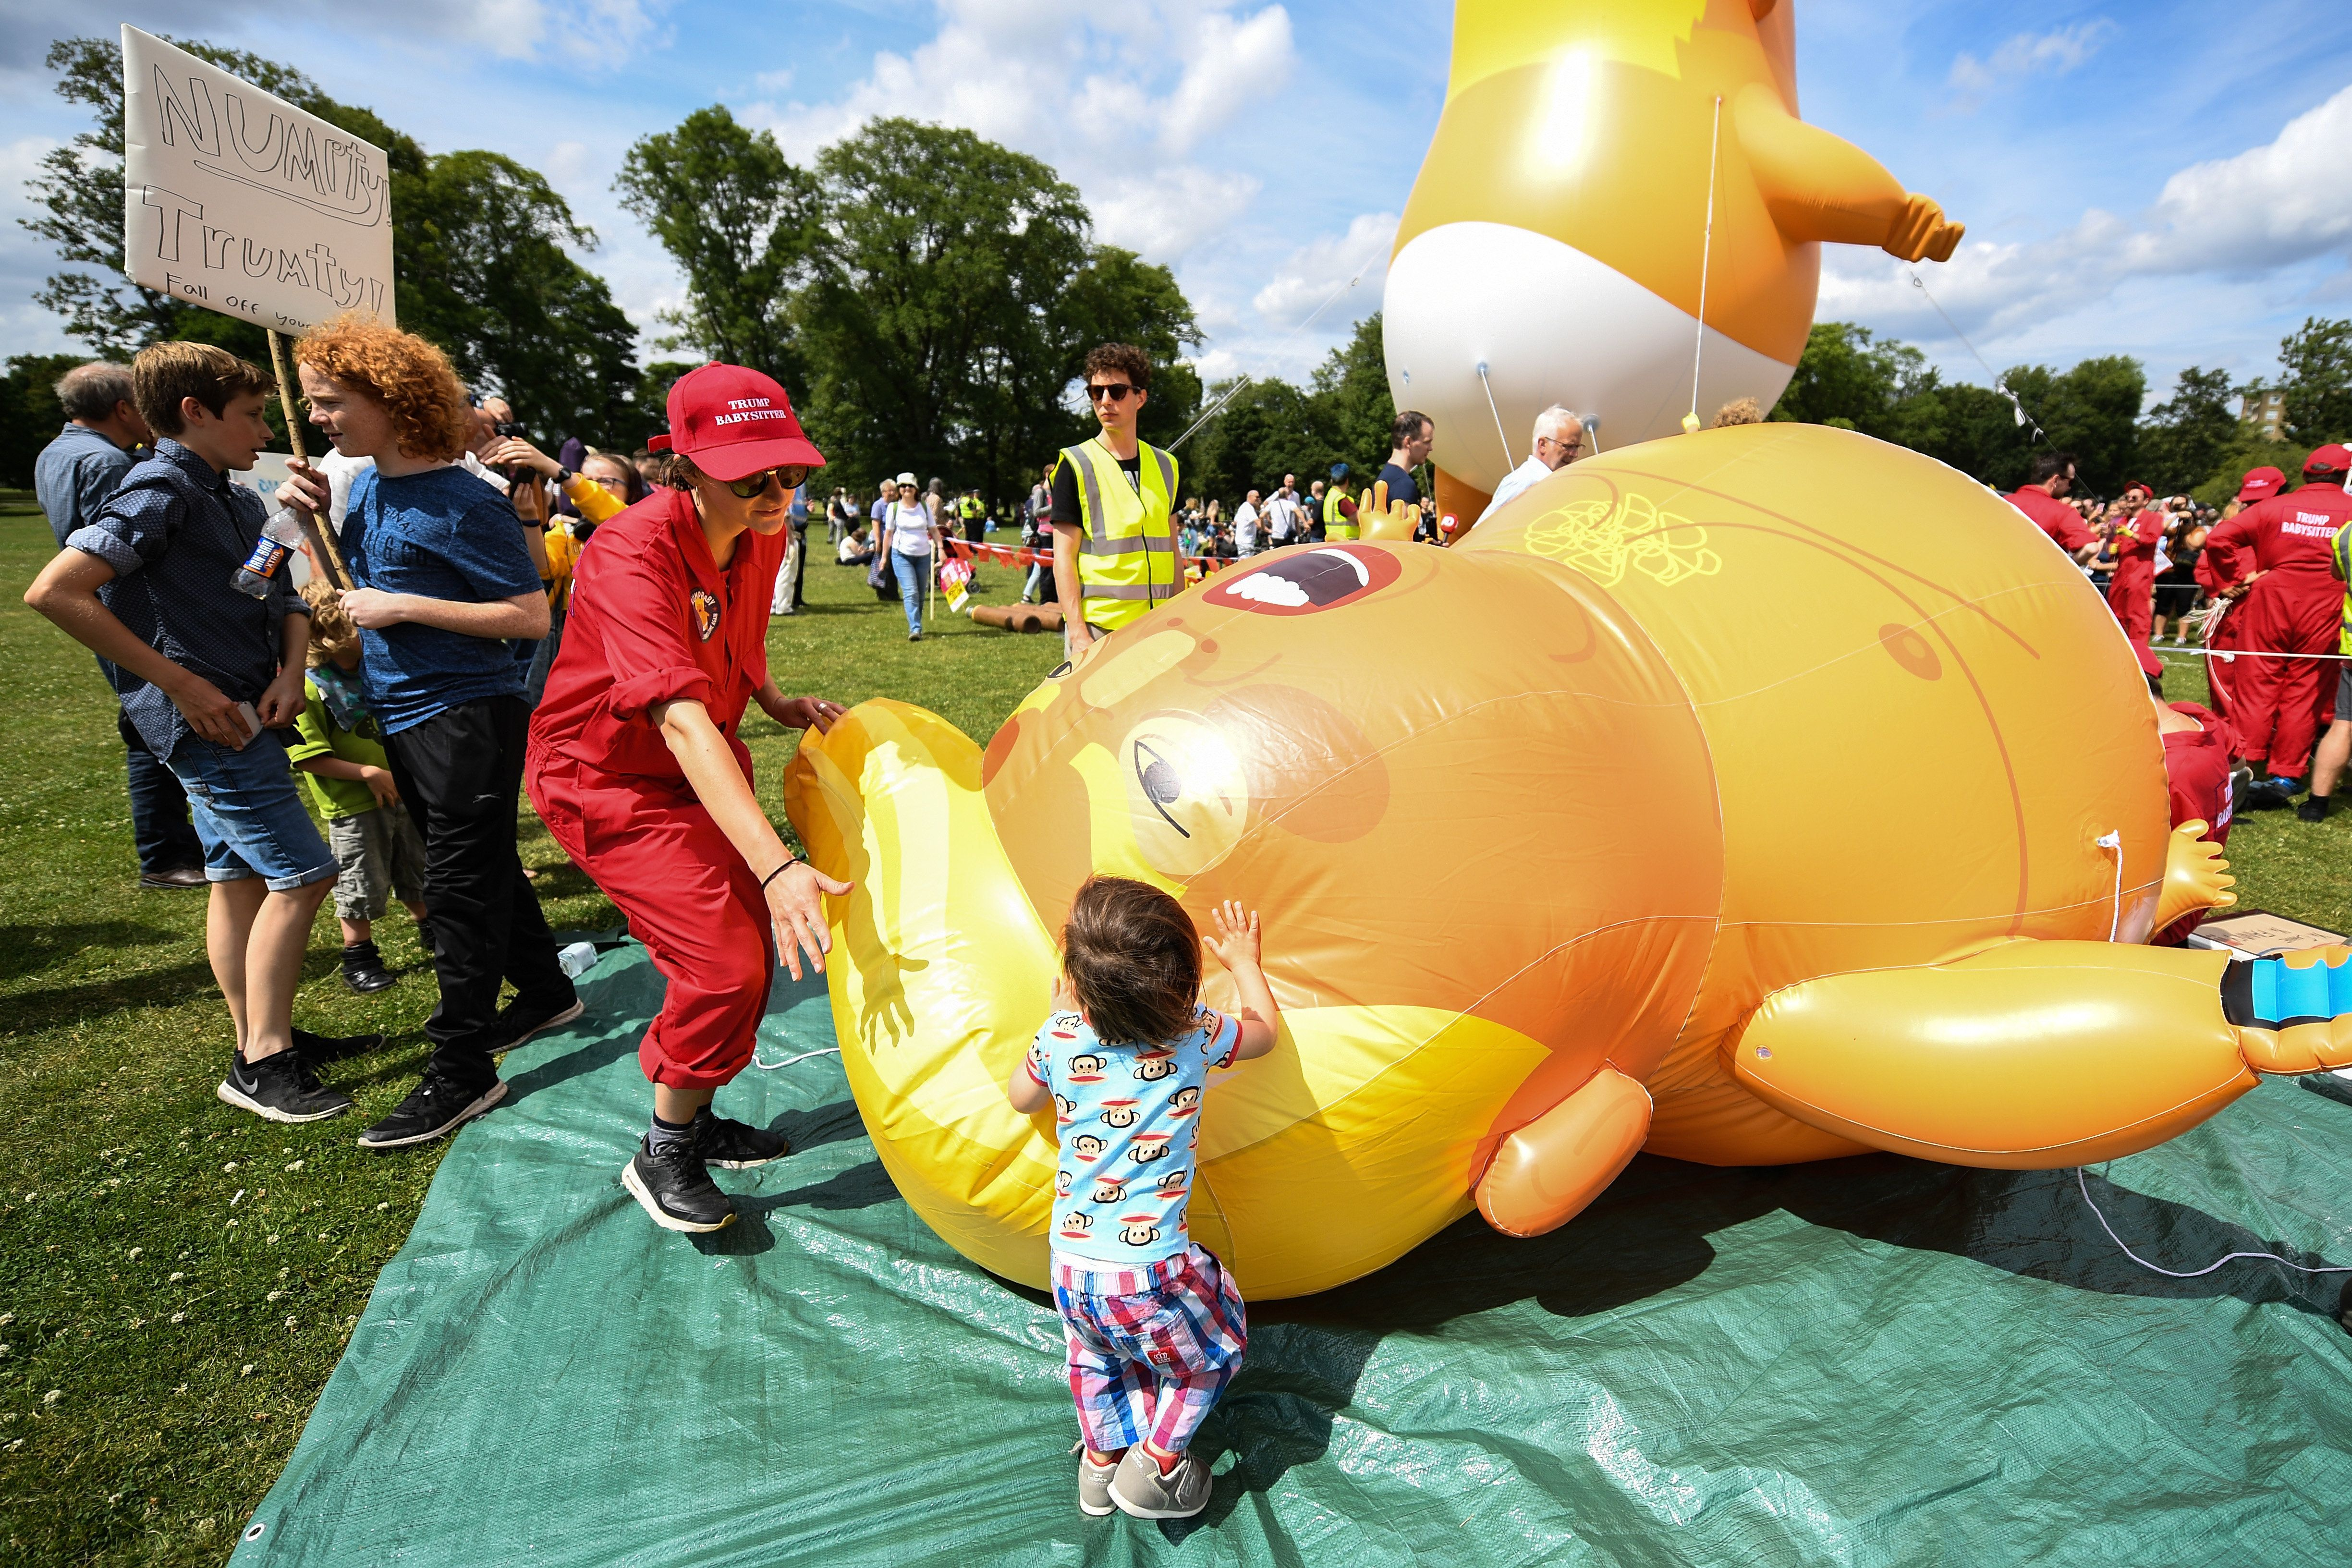 EDINBURGH, SCOTLAND - JULY 14:  The Baby Trump Balloon floats in the middle of crowds holding anti-Trump signs while the U.S. President is visiting Trump Turnberry Luxury Collection Resort in Scotland as people gather to protest during his visit to the United Kingdom on July 14, 2018 in Edinburgh, Scotland. The President of the United States and First Lady, Melania Trump on their first official visit to the UK after yesterday's meetings with the Prime Minister and the Queen is in Scotland for private weekend stay at his Turnberry.  (Photo by Jeff J Mitchell/Getty Images)